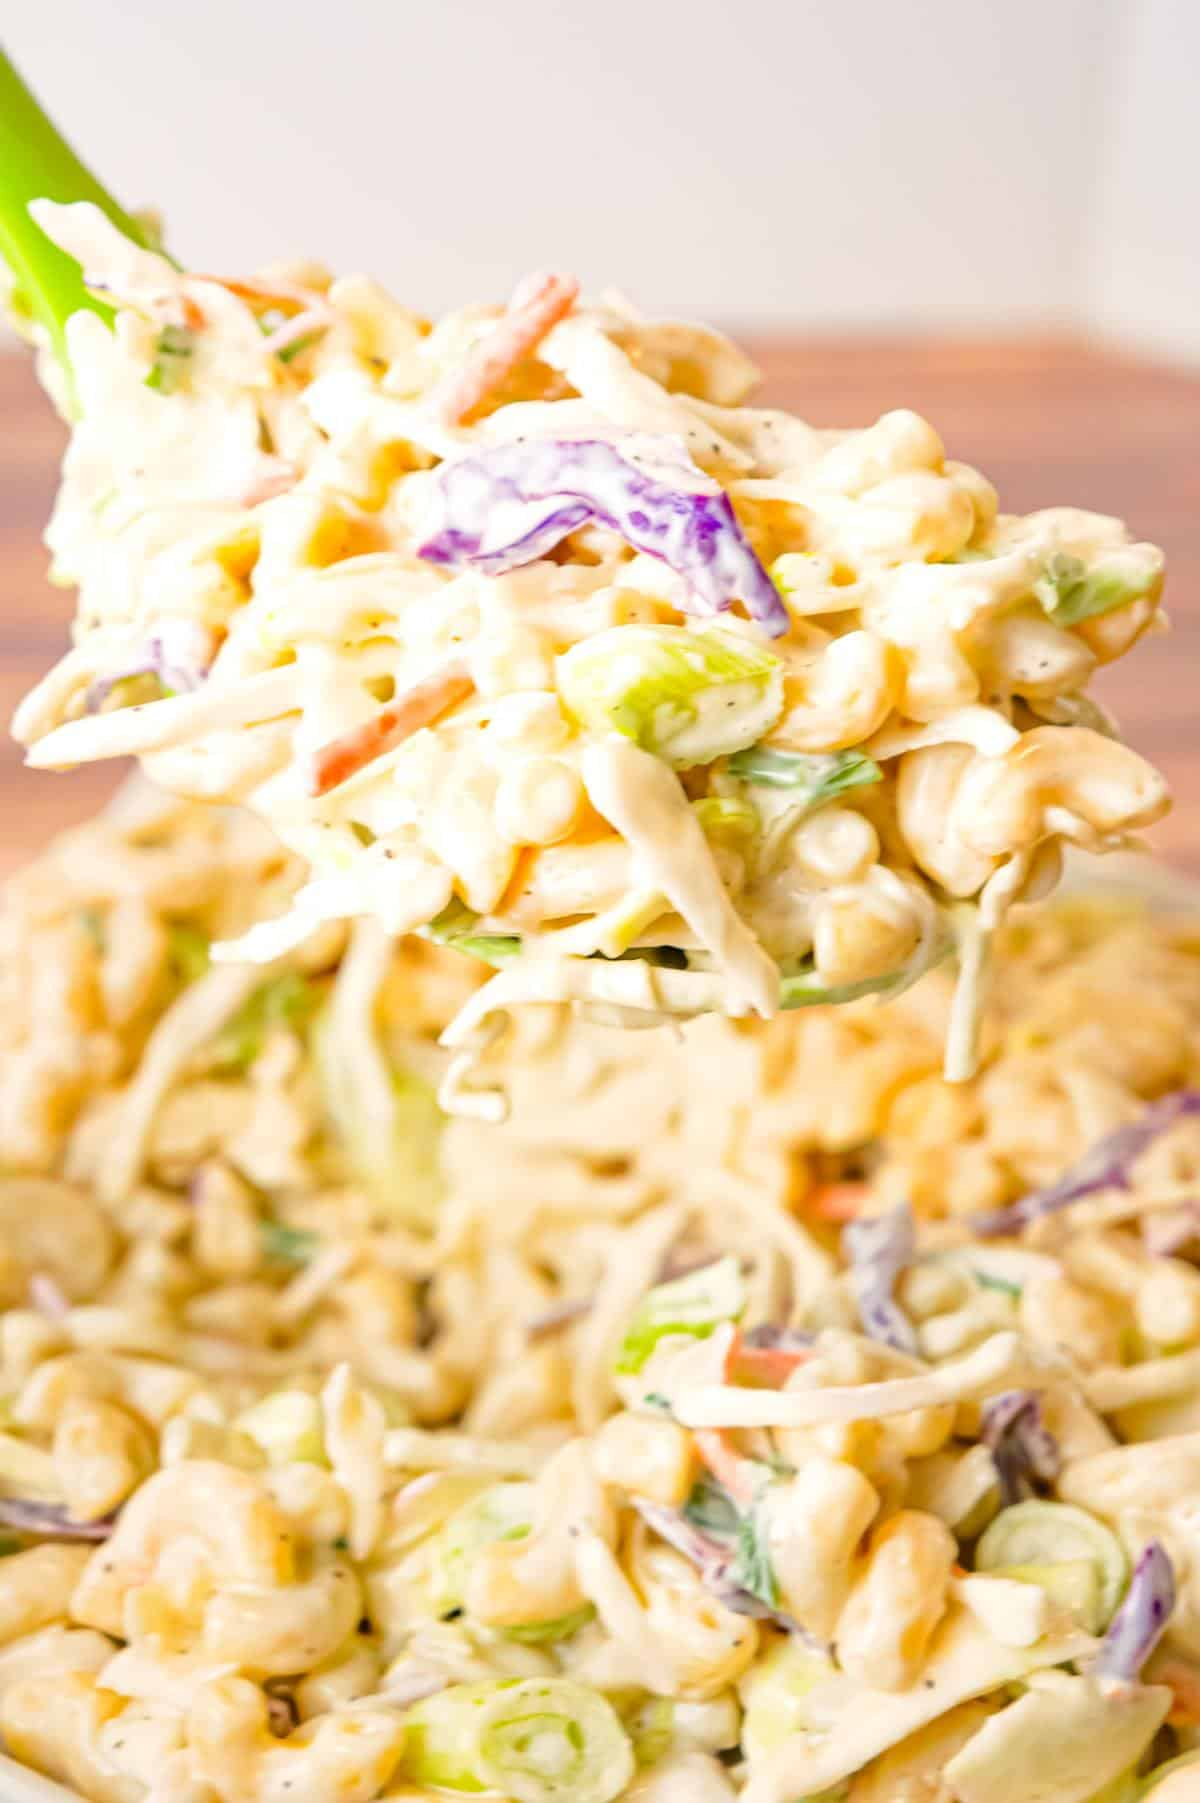 Coleslaw Macaroni Salad is a simple cold side dish recipe perfect for summer barbecues and potlucks.